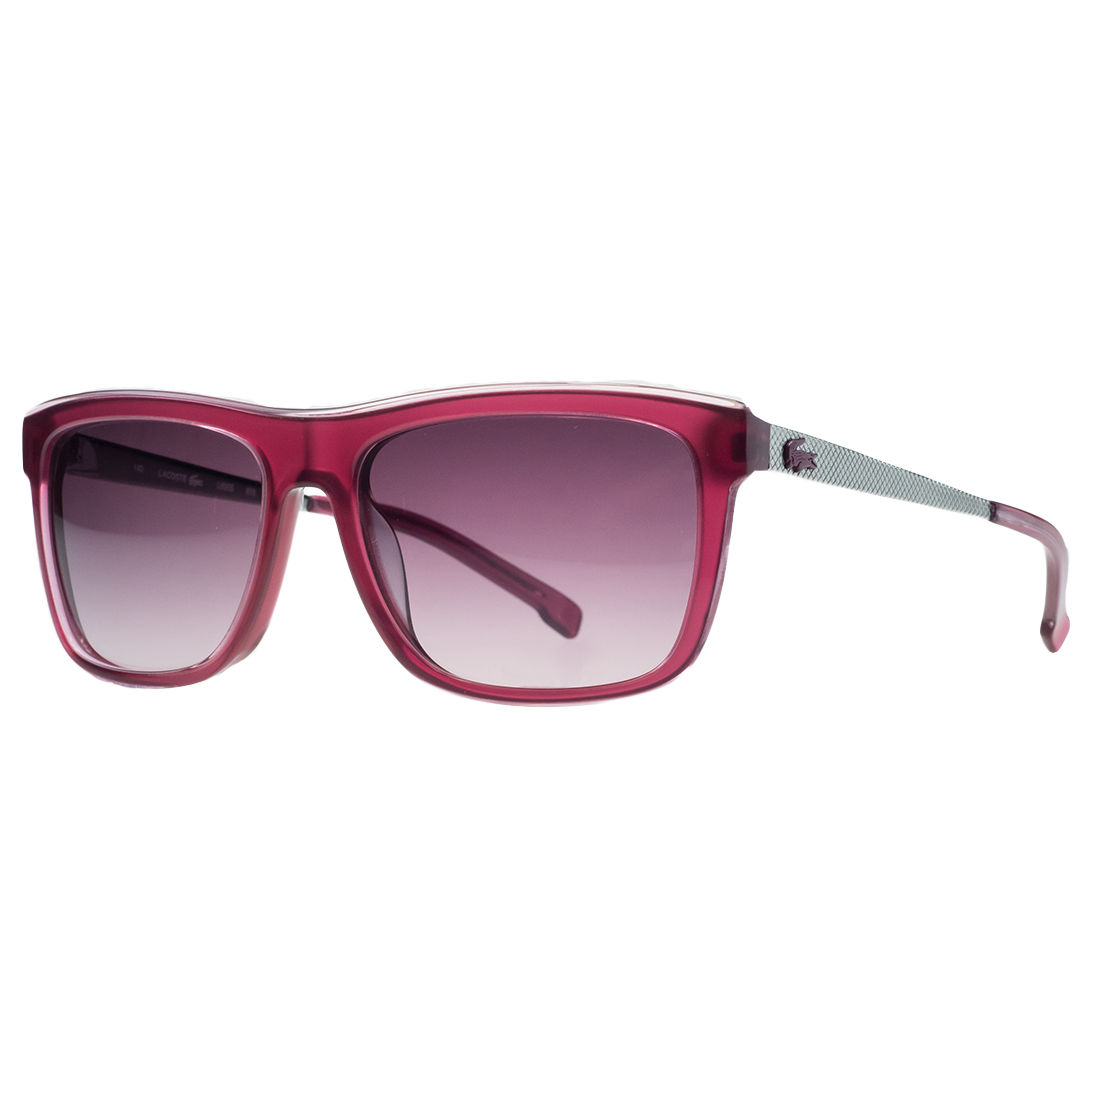 Lacoste L695/S 615 Red Wayfarer Sunglasses